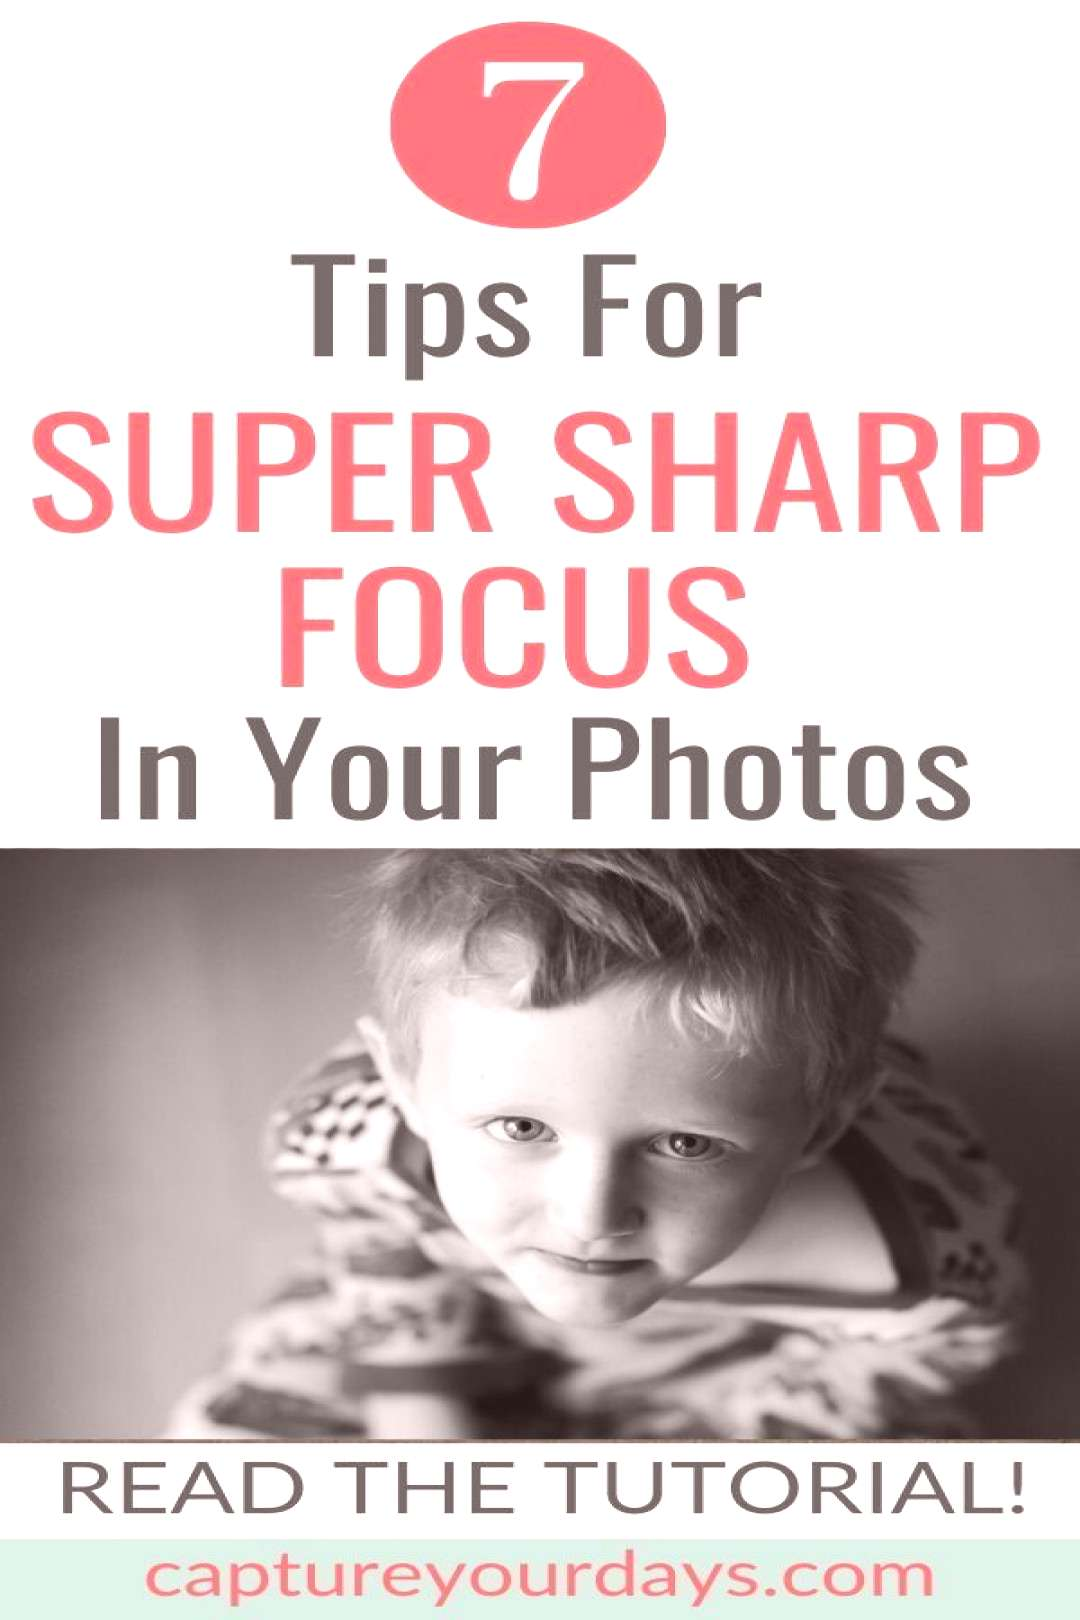 7 Tips for Super Sharp Focus In Your Photos